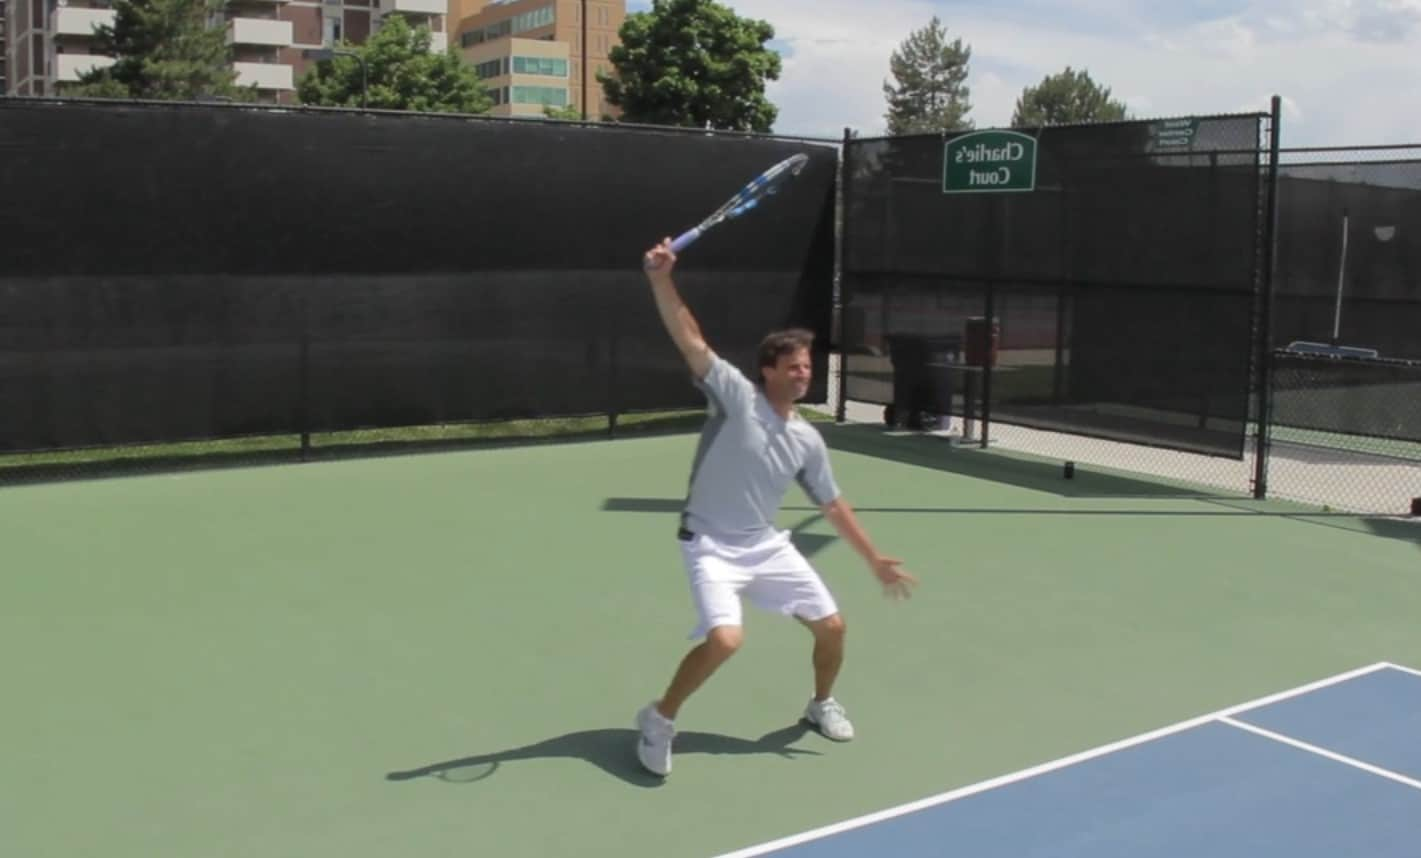 One handed backhand topspin finish